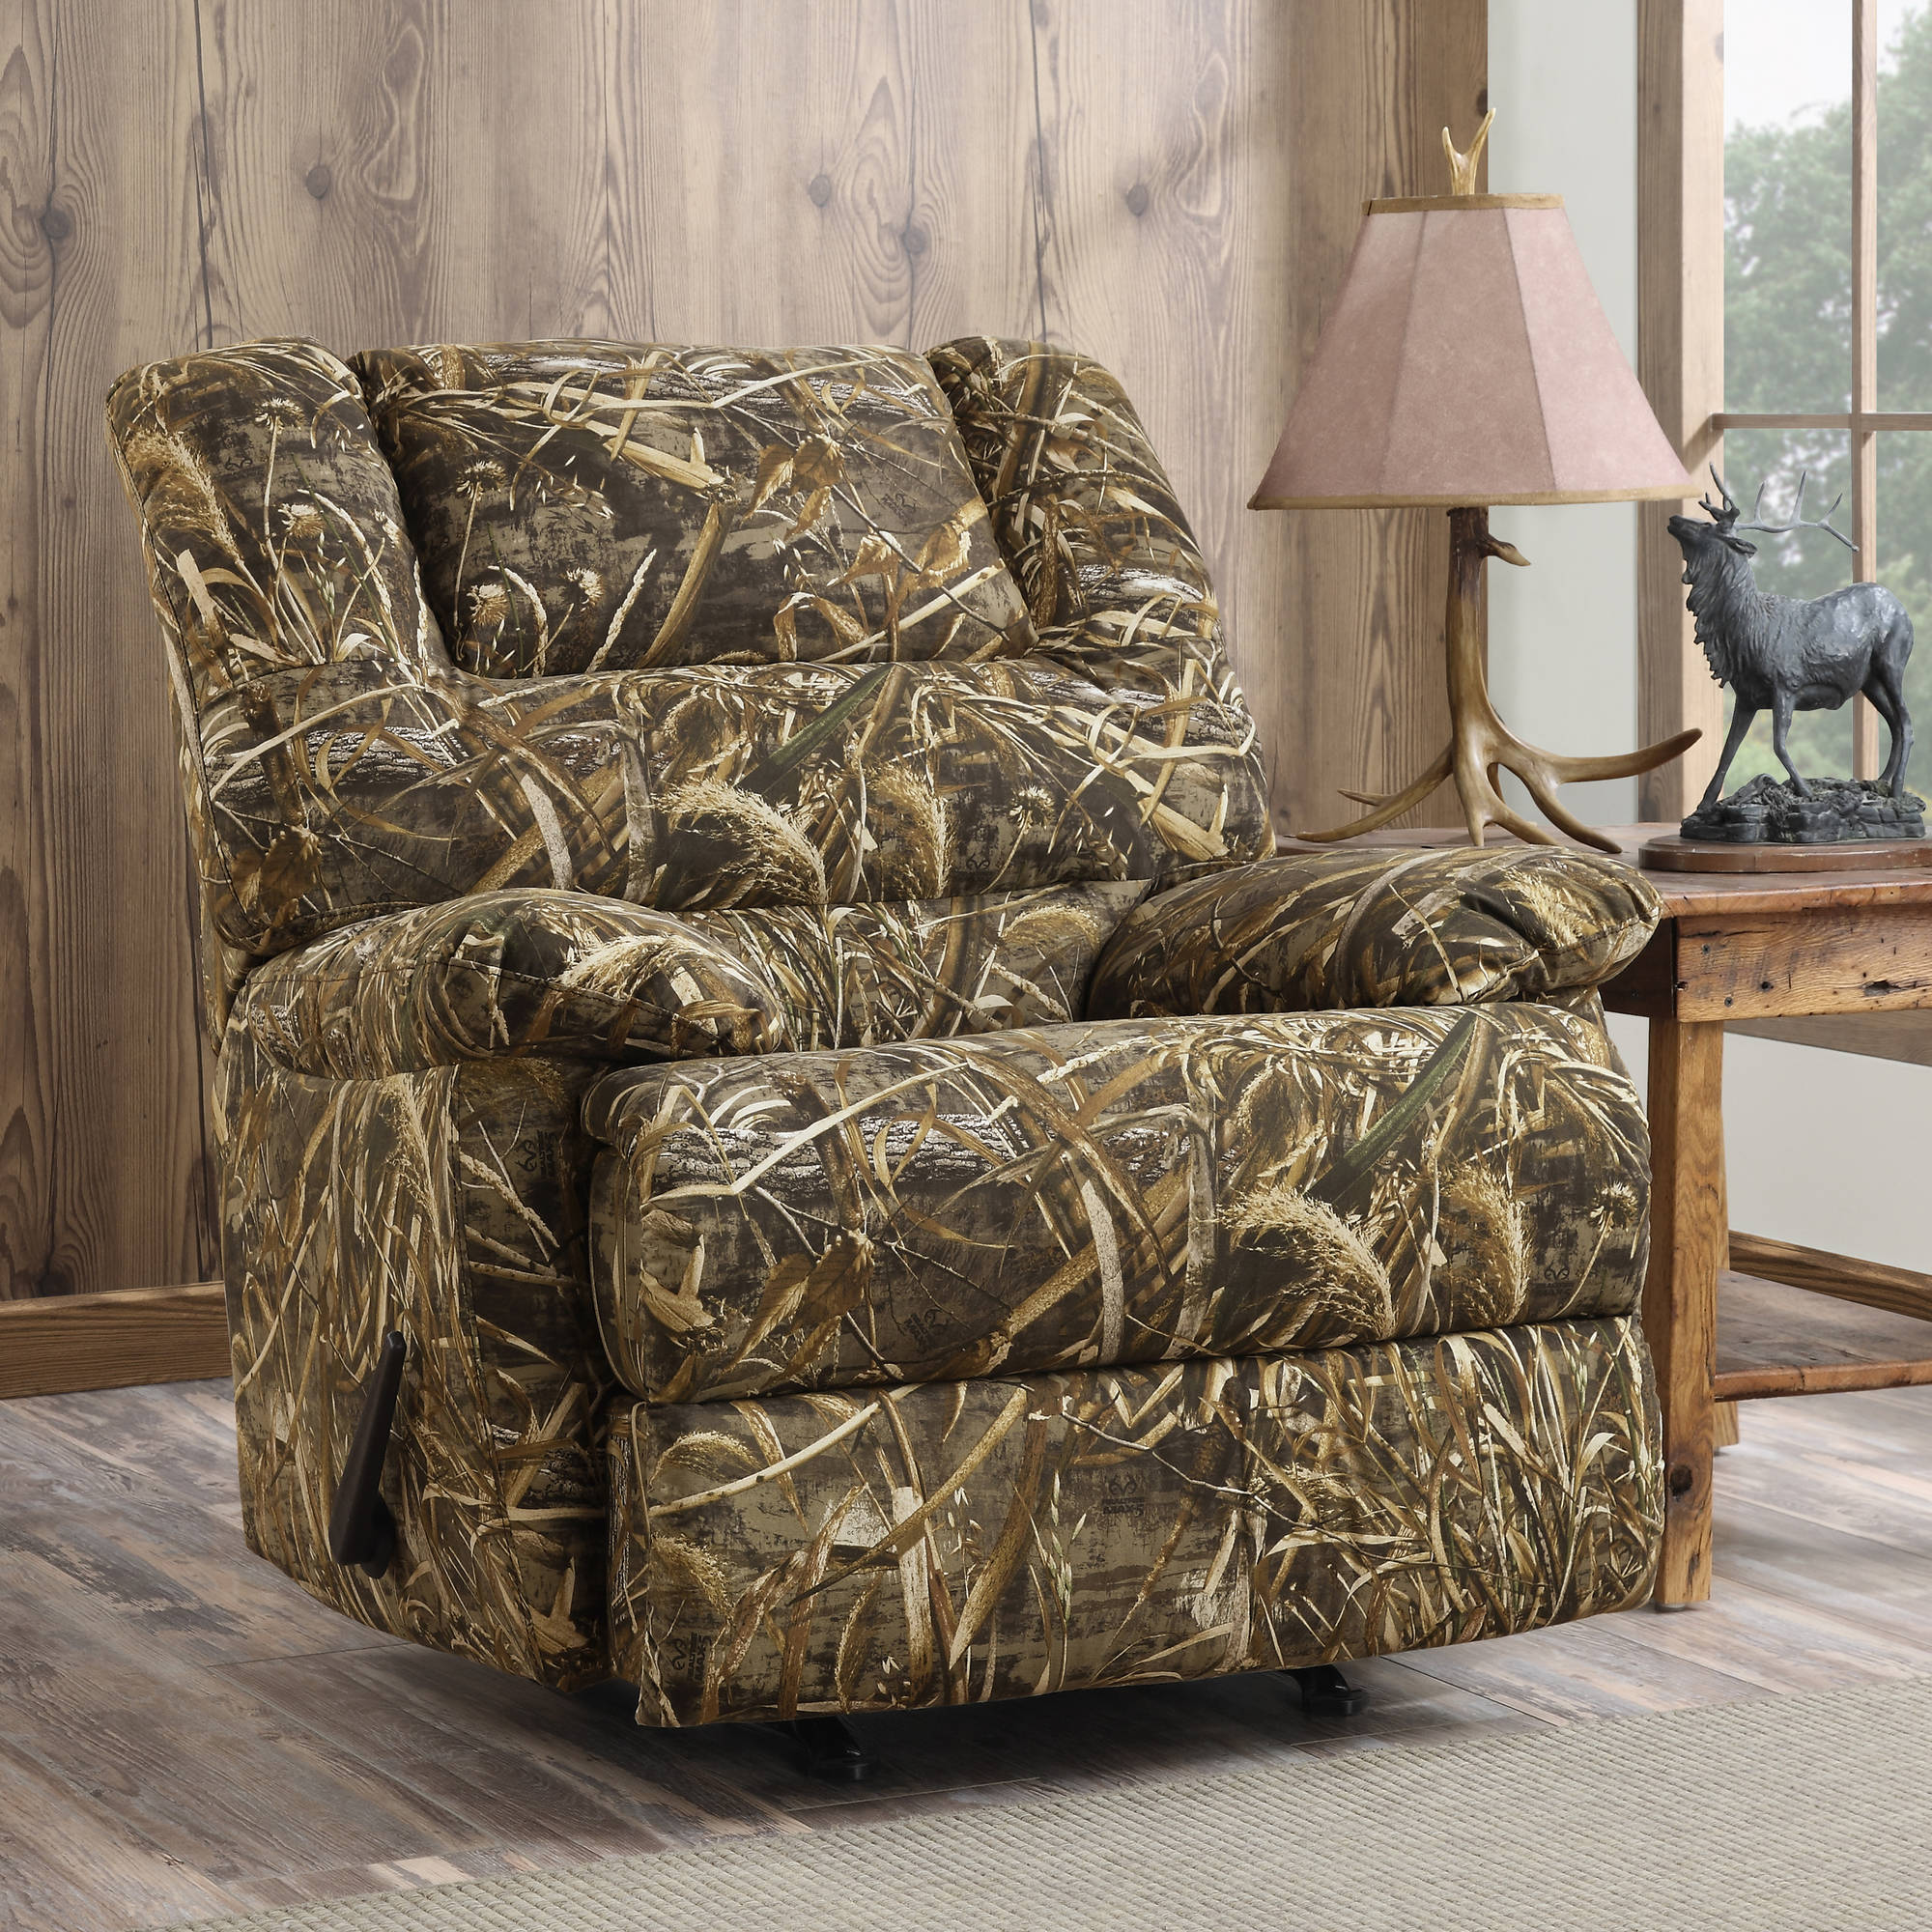 Dorel Living Realtree Camouflage Deluxe Recliner, Camo